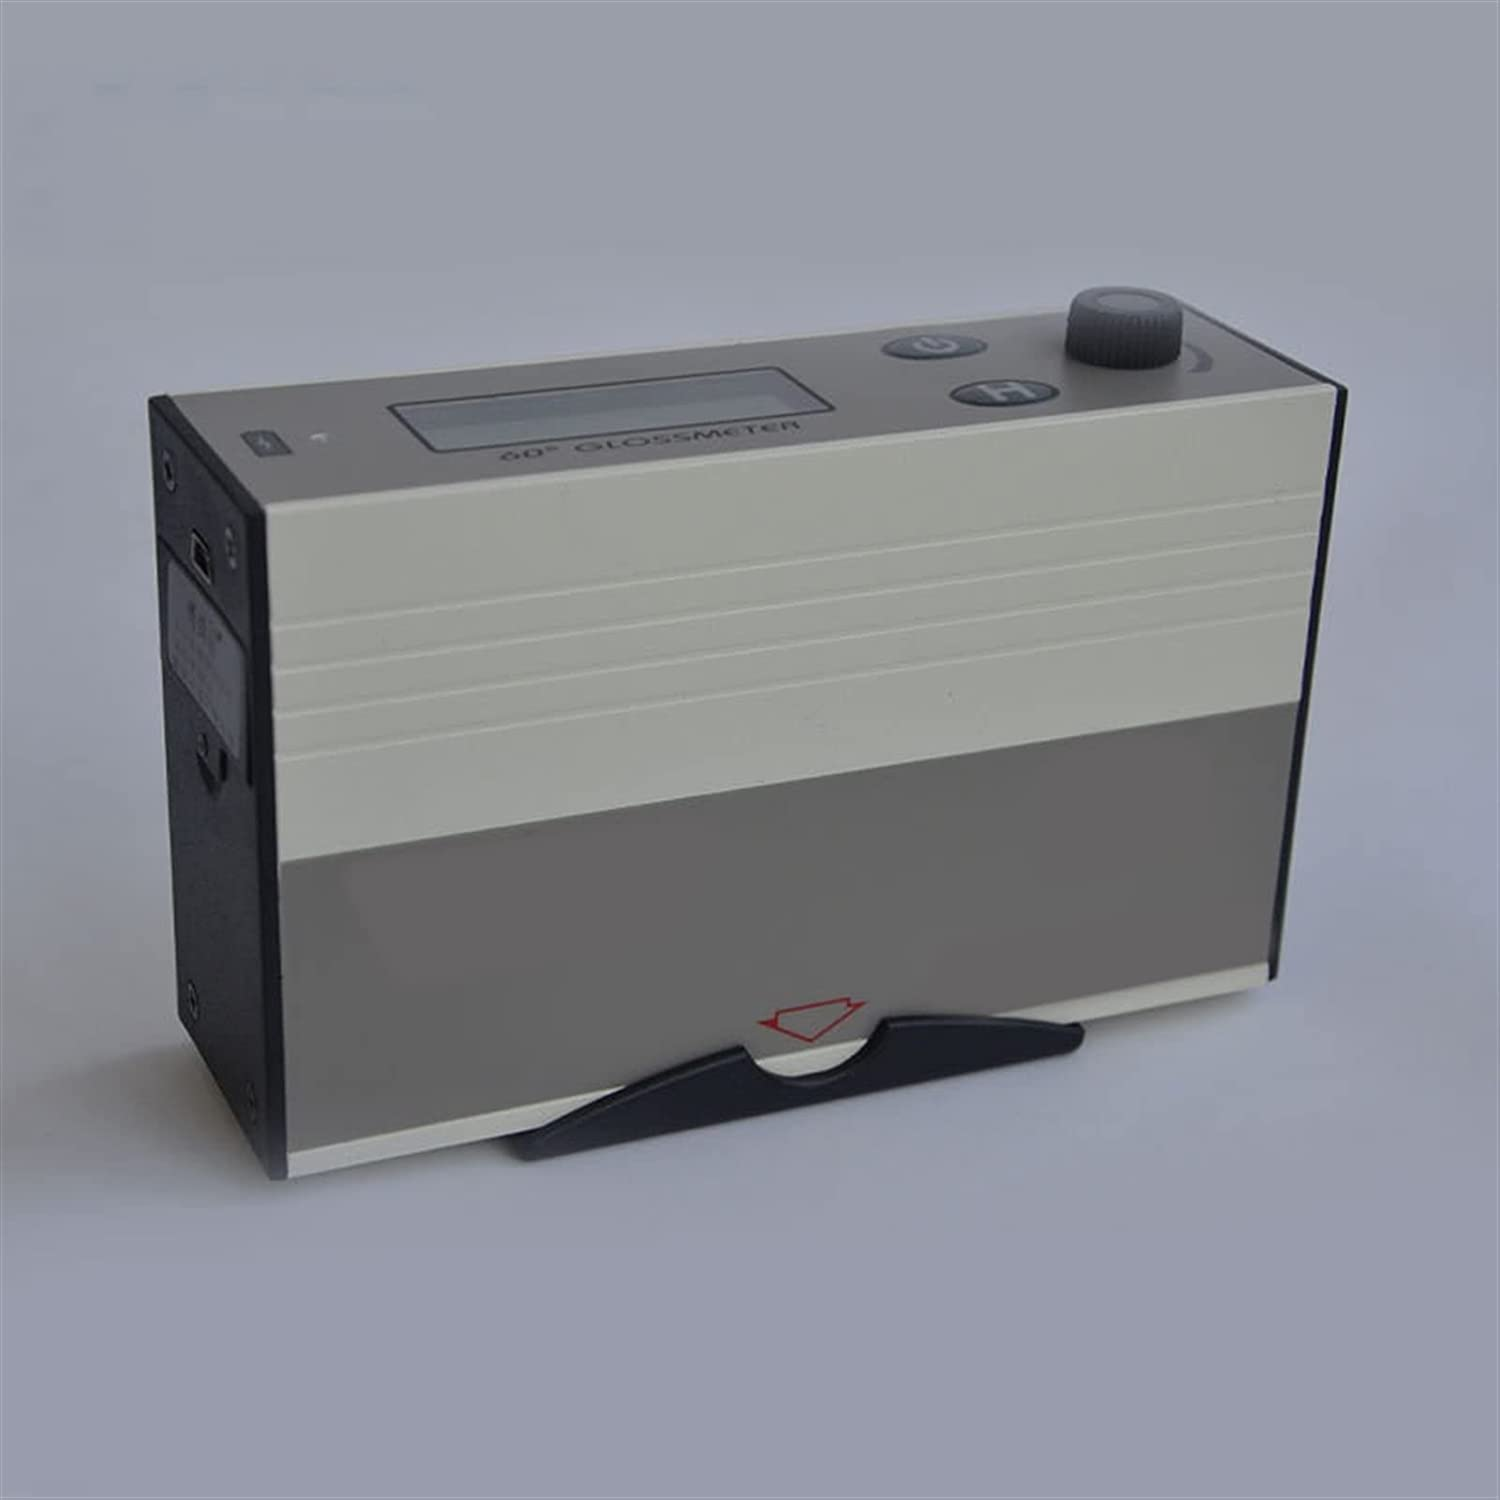 HAILAN-H Color Analyzer Gloss Over item handling ☆ All items free shipping Paint Meter M High-Precision